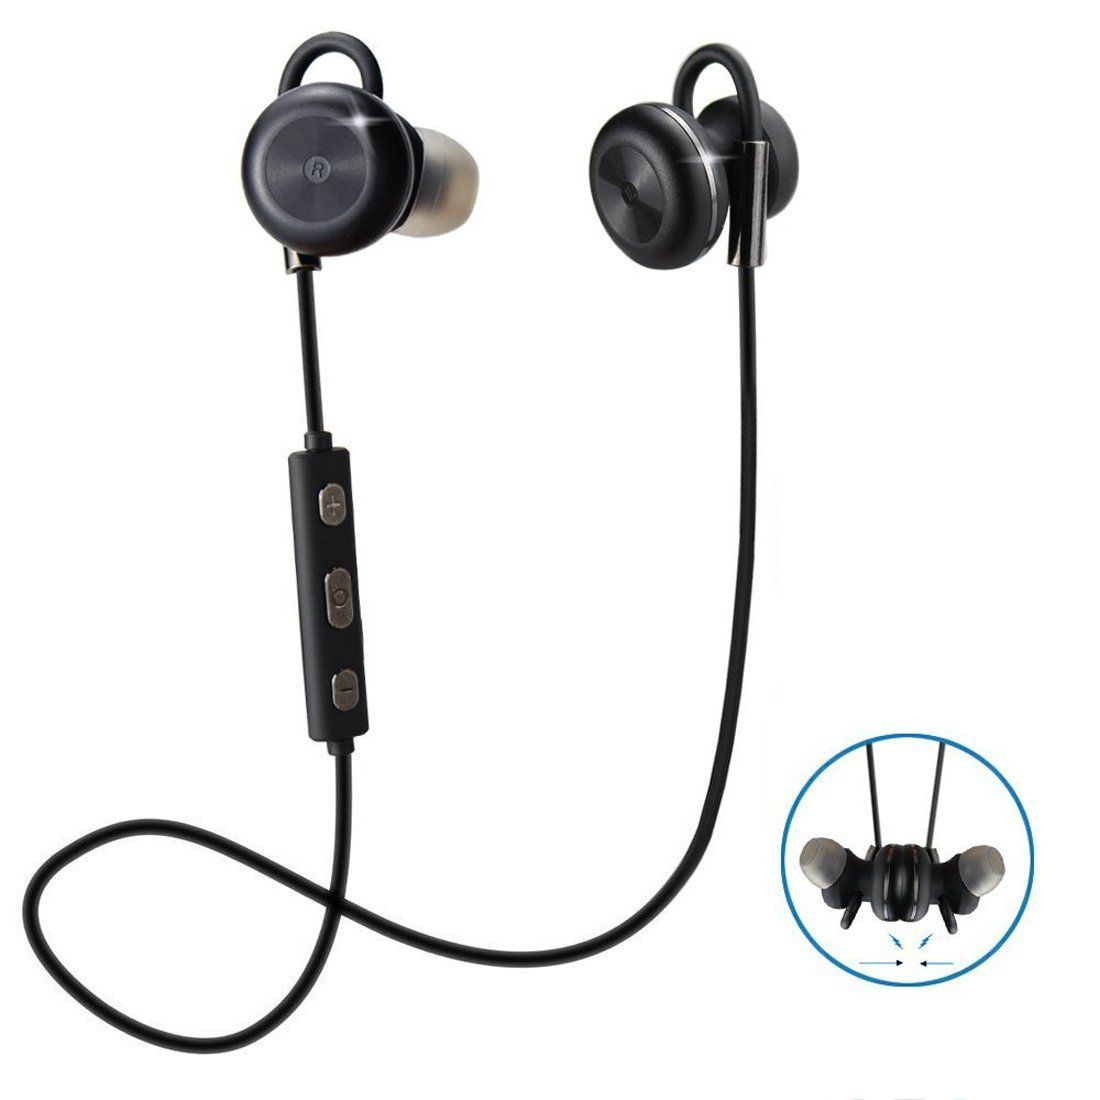 Bluetooth Workout Headphones for $8.99! Over 50% off...